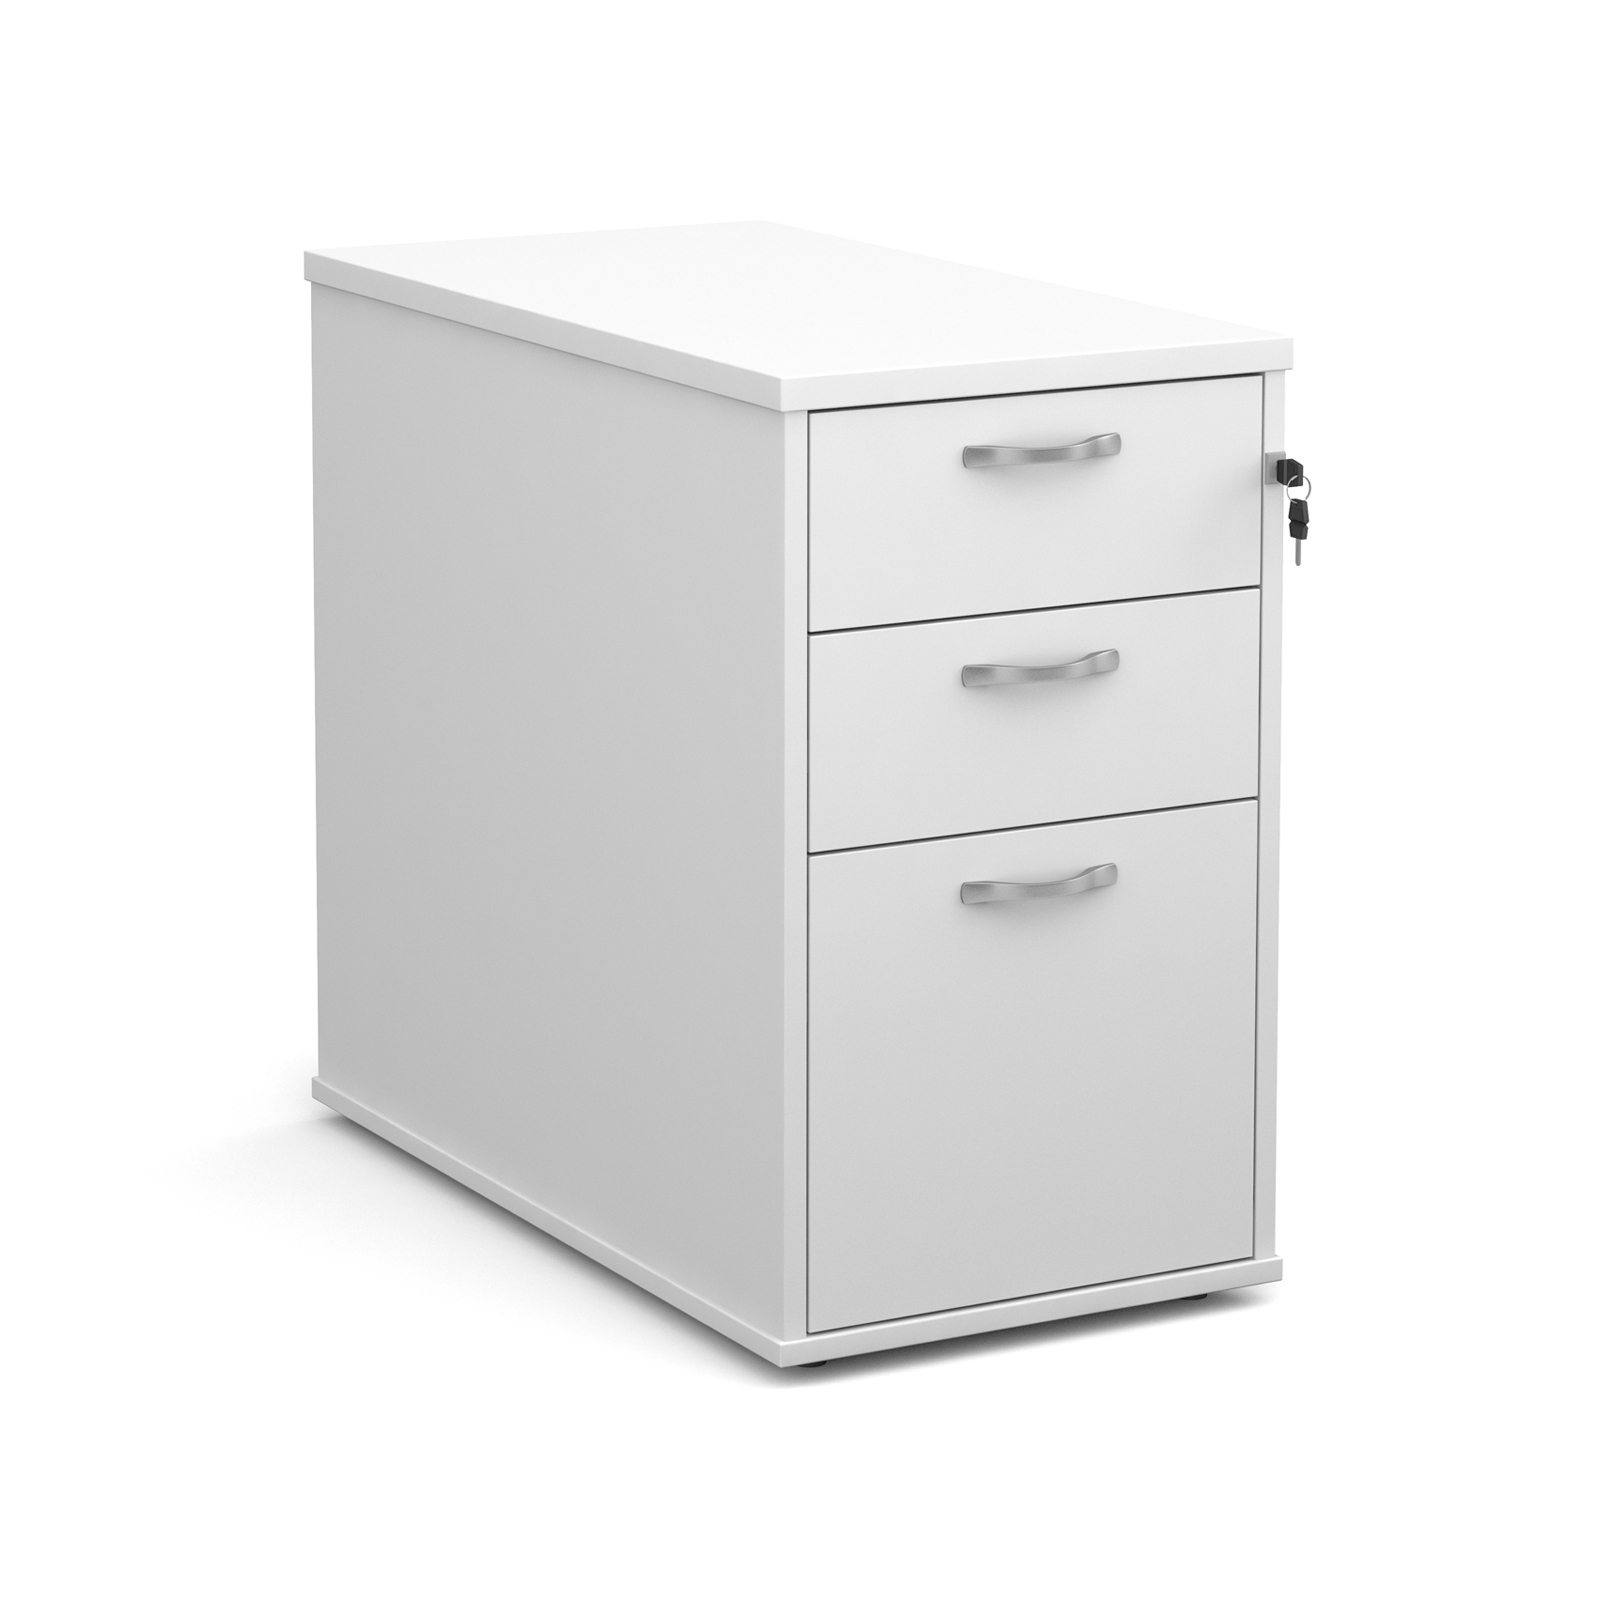 3 Drawer Desk high 3 drawer pedestal with silver handles 800mm deep - white